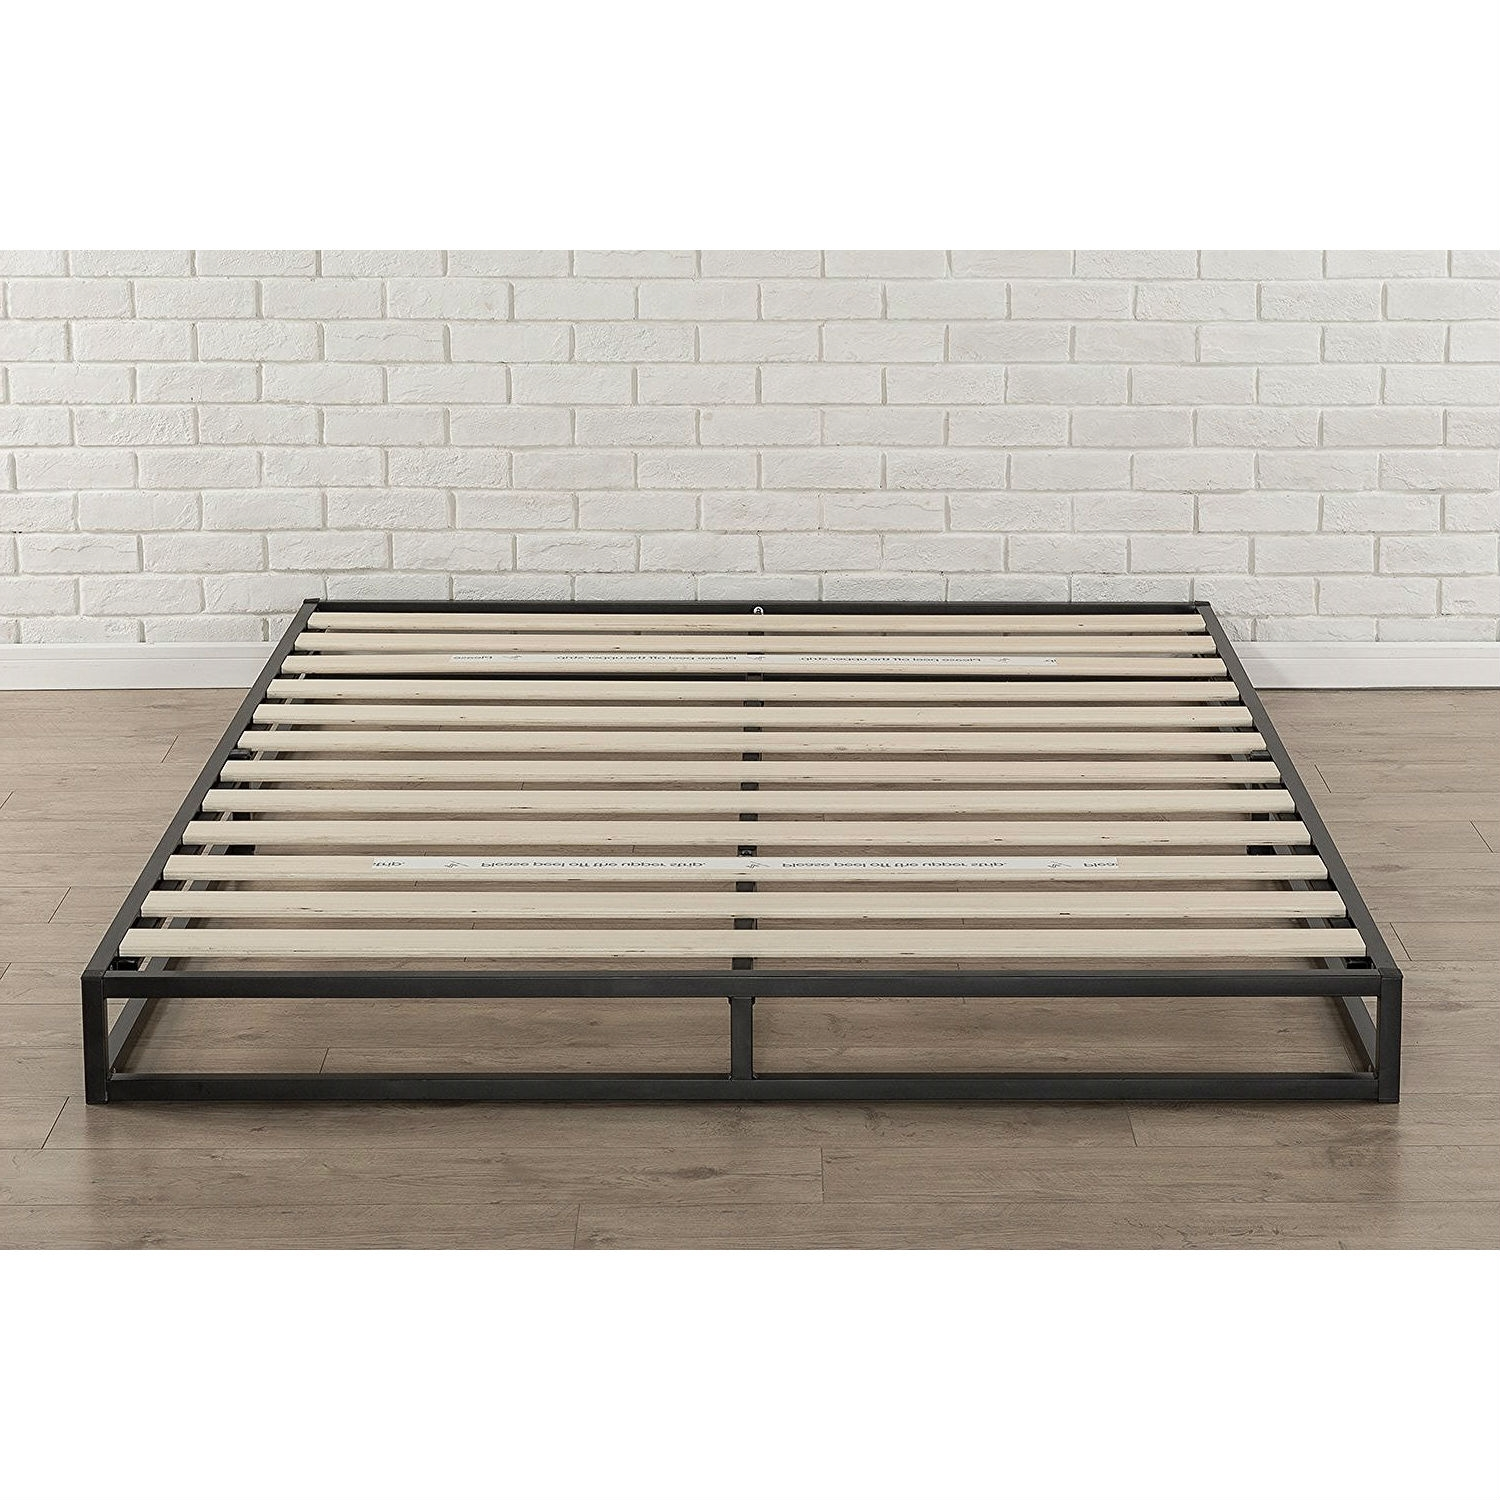 Queen size 6-inch Low Profile Metal Platform Bed Frame with Wooden ...